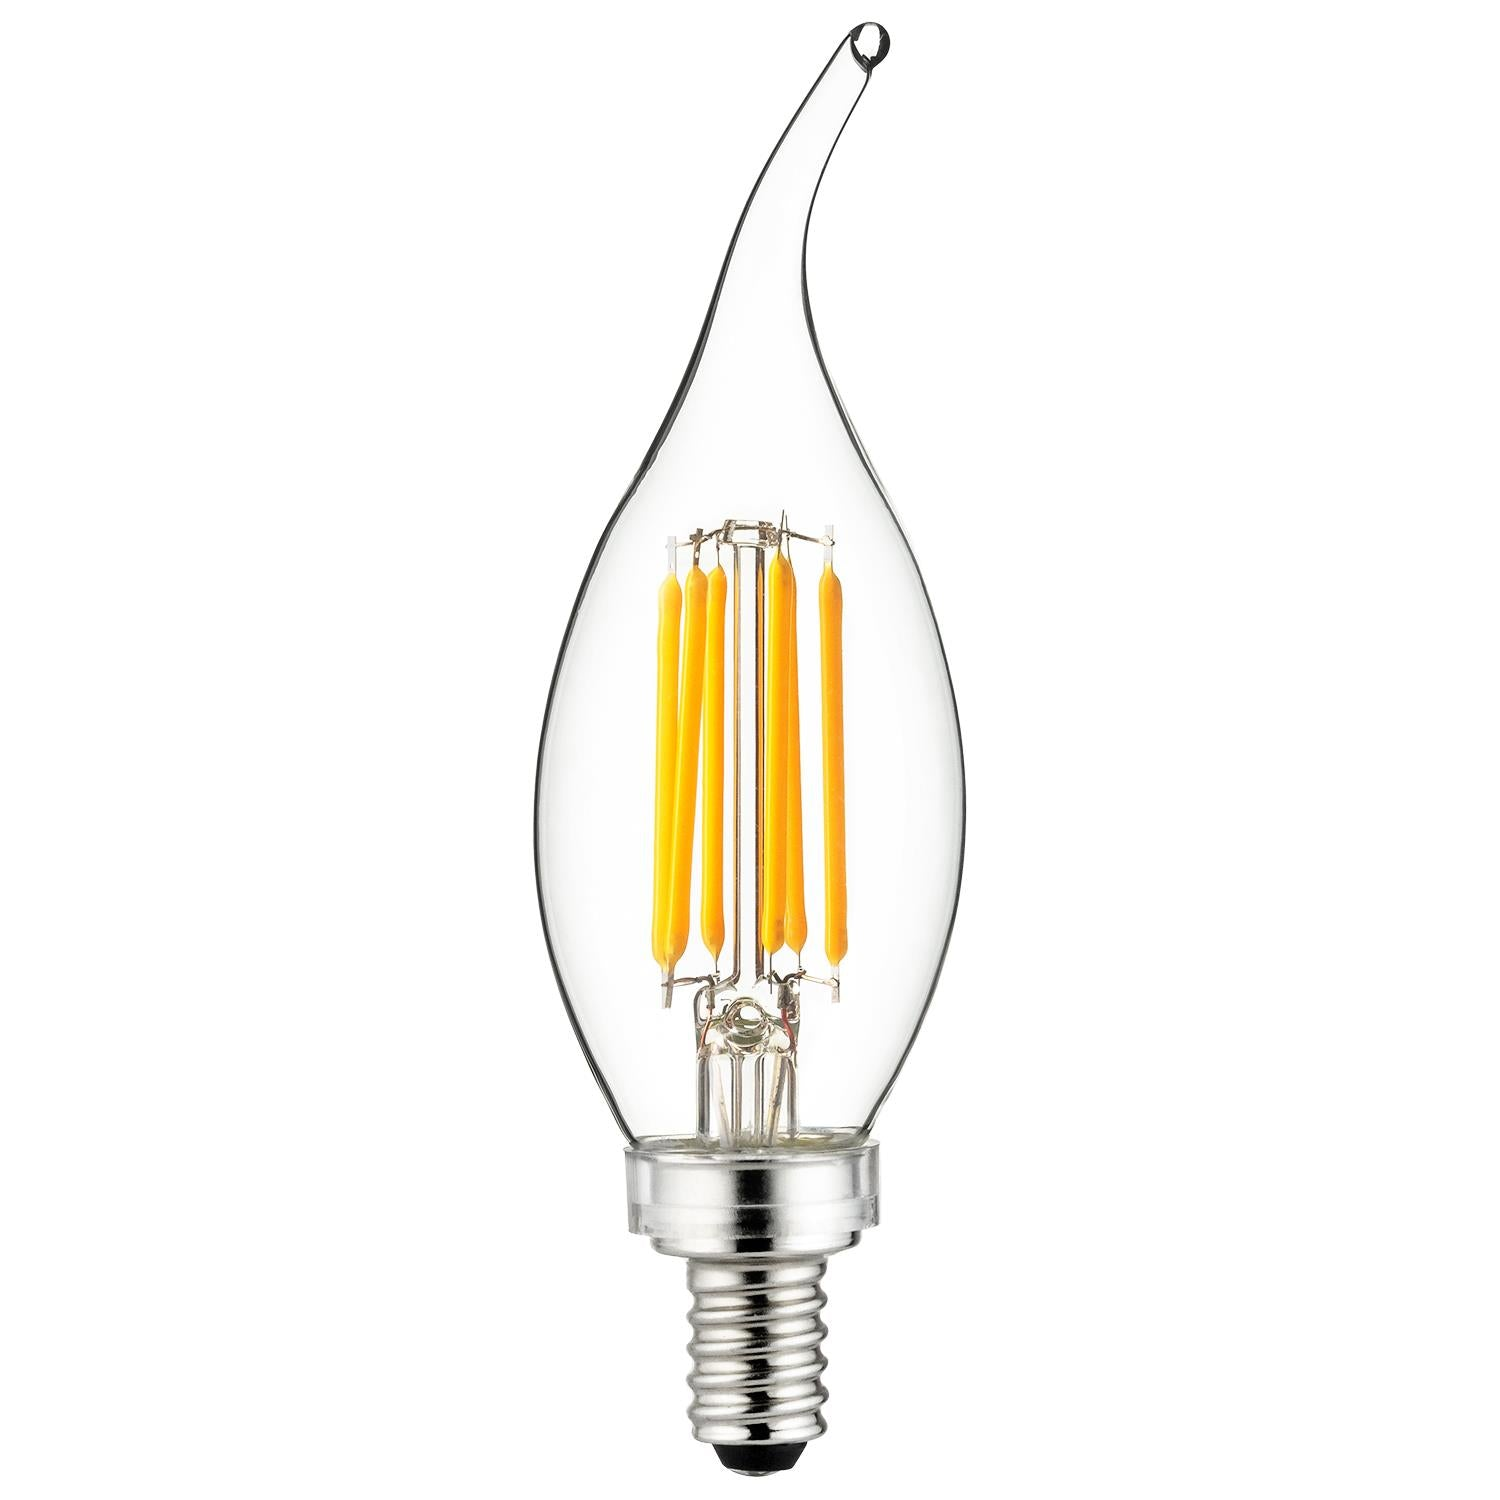 SUNLITE 5w E12 Candelabra LED Filament CA11 Flame Tip 2700K Warm White